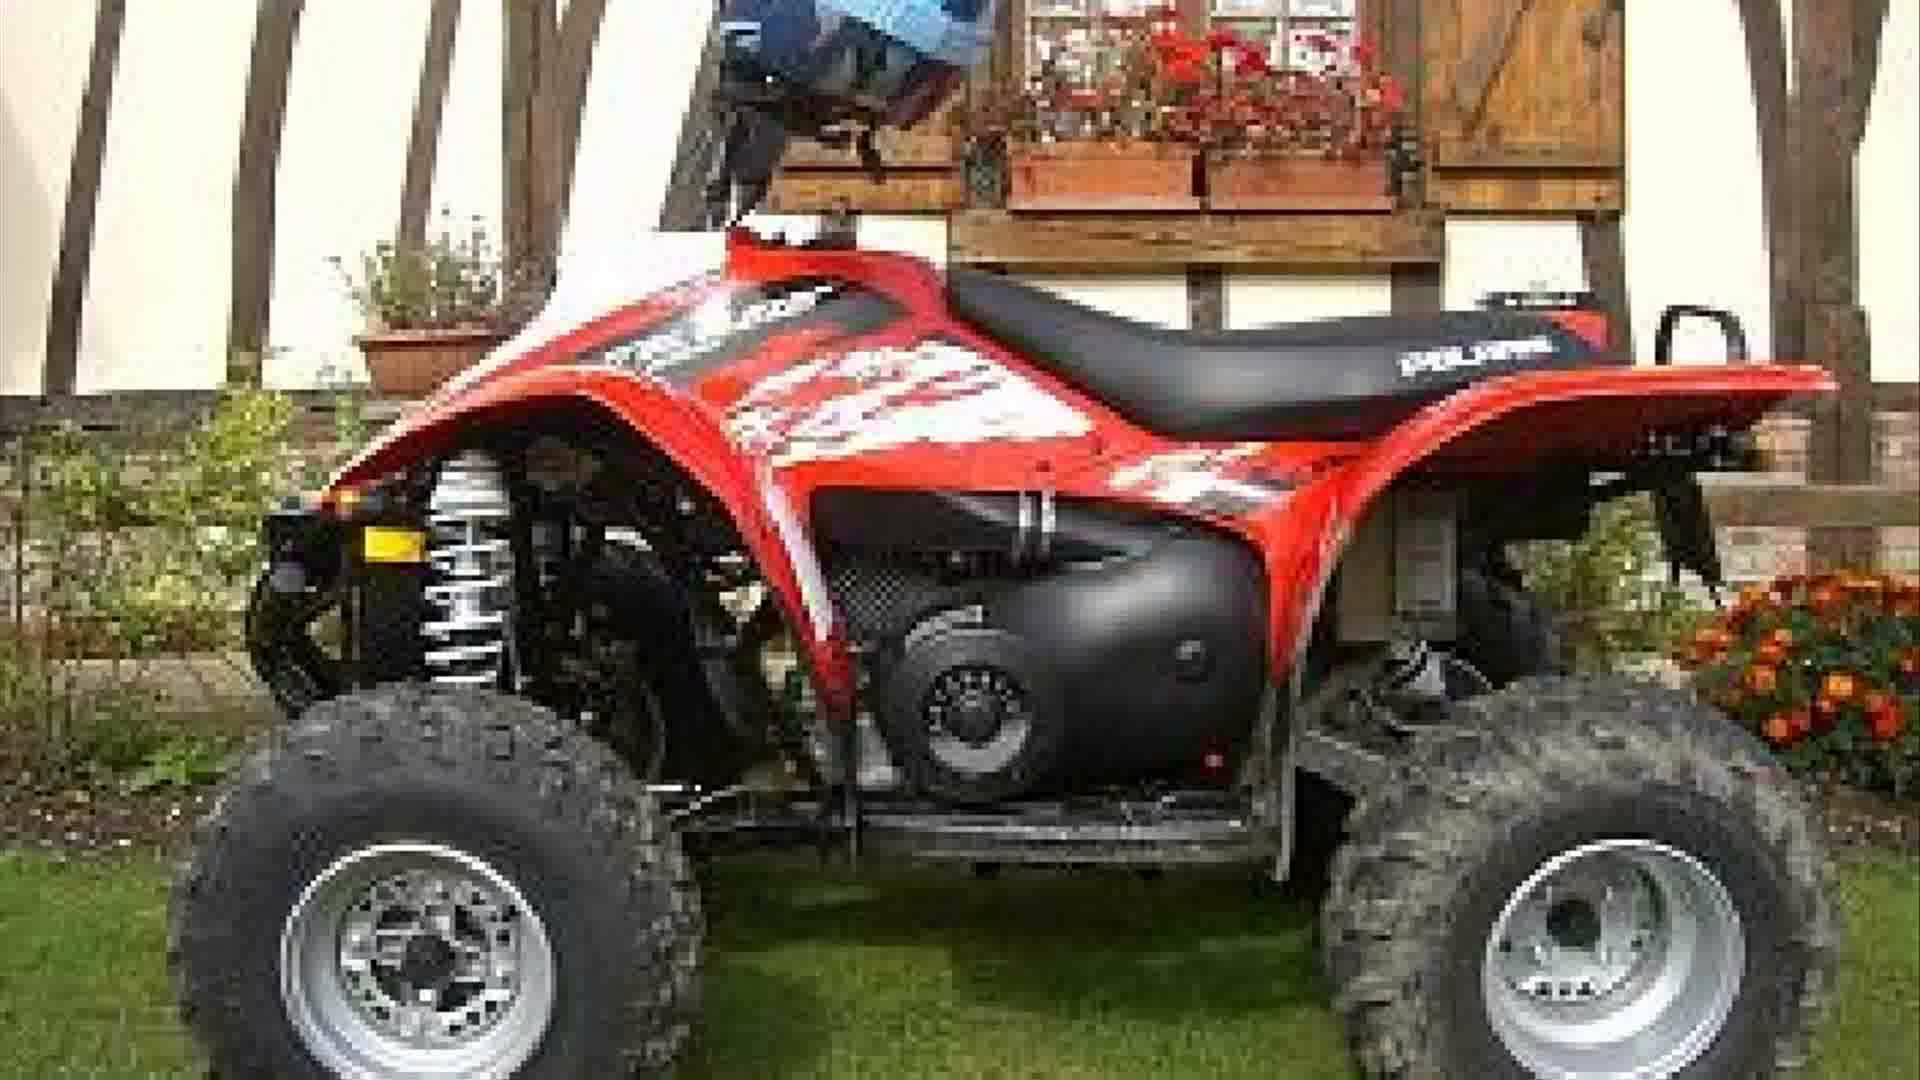 Polaris Trail Boss 330 2008 images #169666